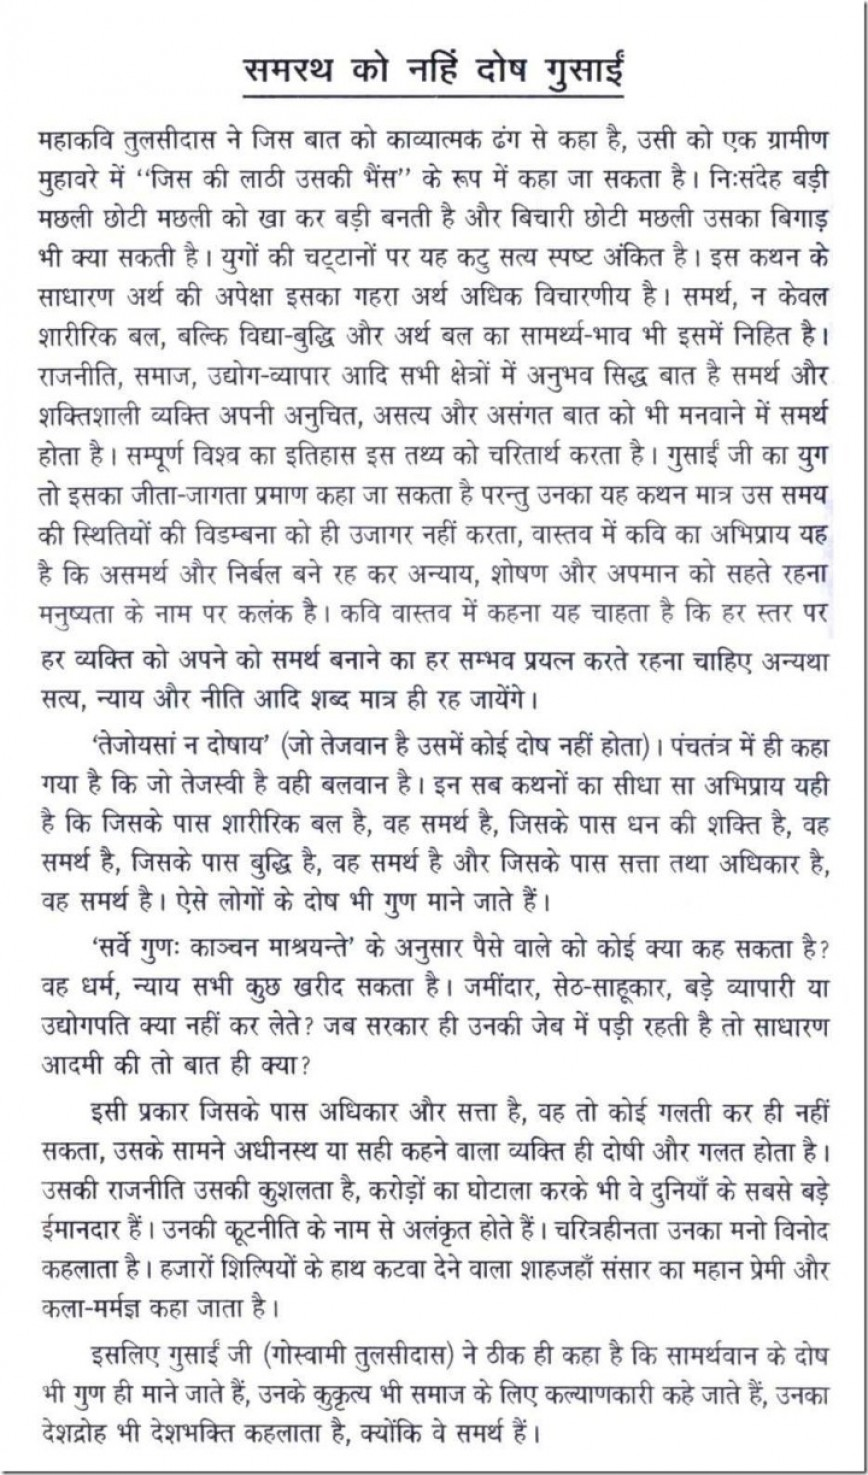 007 Good Habits Essay In Hindi Example Hh0055 Thumbresize7202c1224 Exceptional Healthy Eating Reading Is A Habit 868